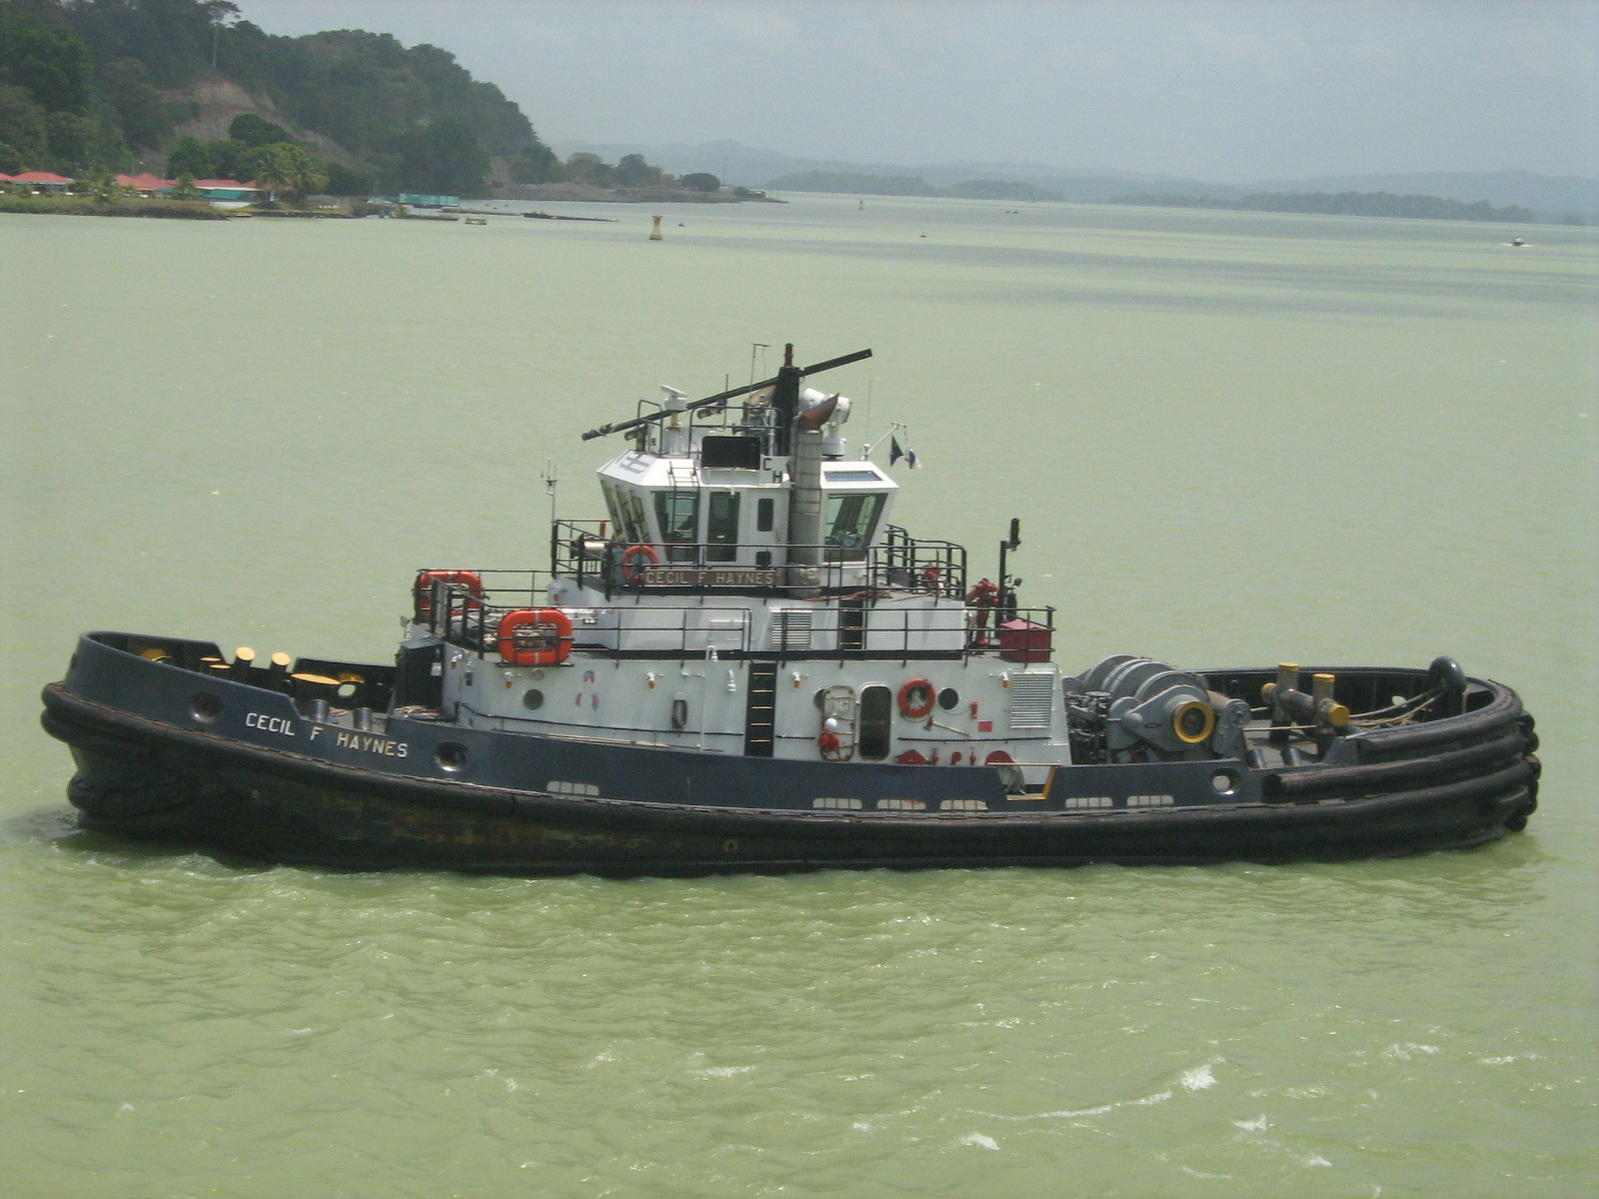 This is the tug boat I saw that started my boat model building interest.  I am told it is a tractor tug.